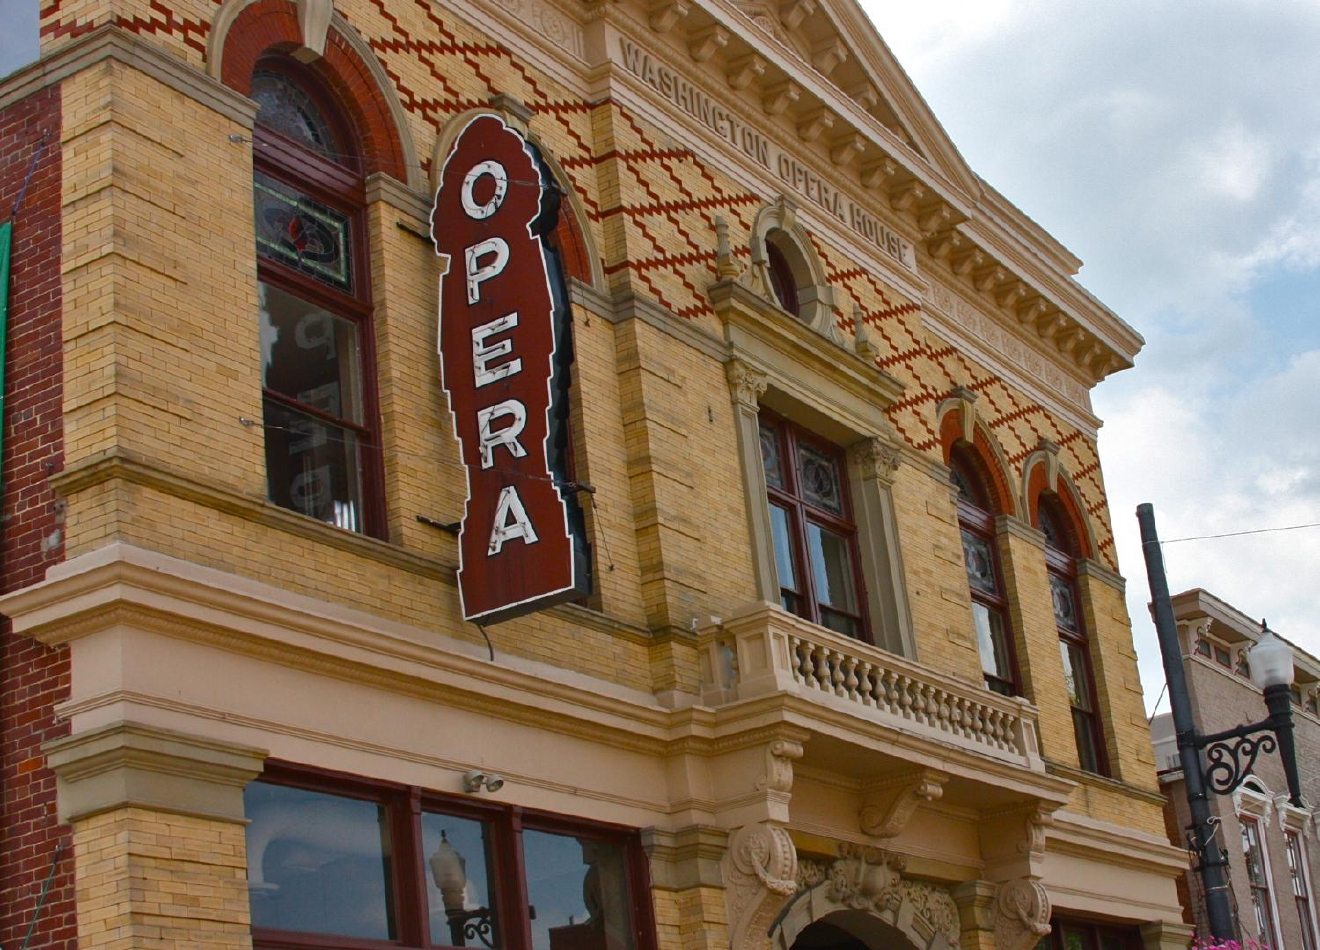 The event is hosted by and benefits the Maysville Players, the oldest theatrical group in Kentucky. Their home is the Washington Opera Theatre, which is the fifth oldest continuously-run theatre in the nation. / Image: Molly Paz // Published: 6.4.19